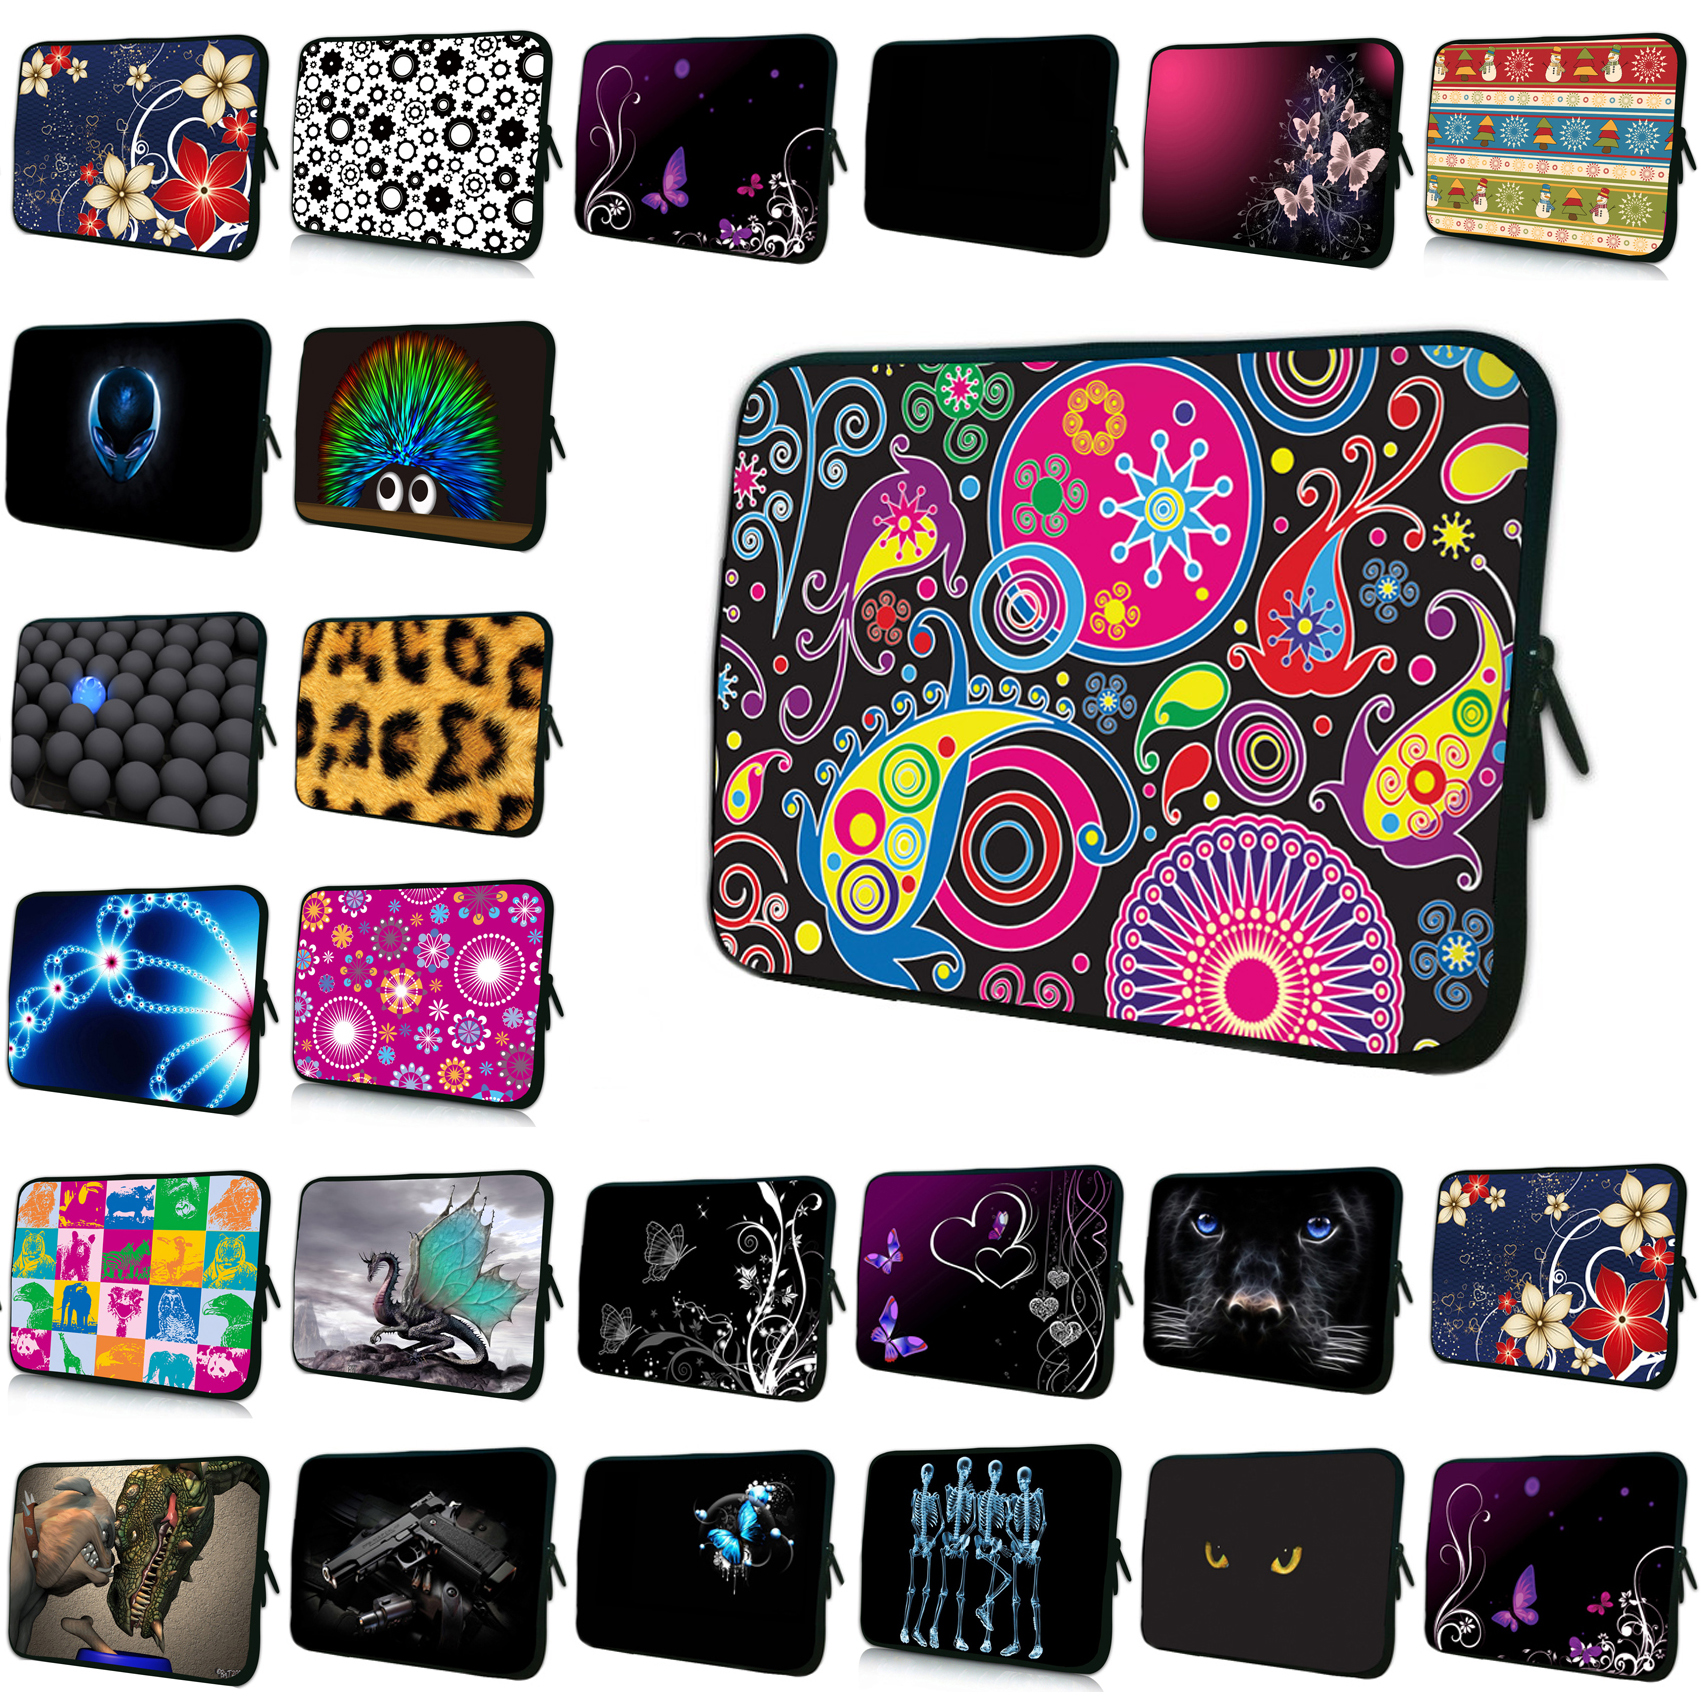 15.4 15.6 Computer Notebook Bags Cases For Women Men 7 10 12 13 14 15 16 17 inch Netbooks Shell Case Pouch Cover Bag For iPad